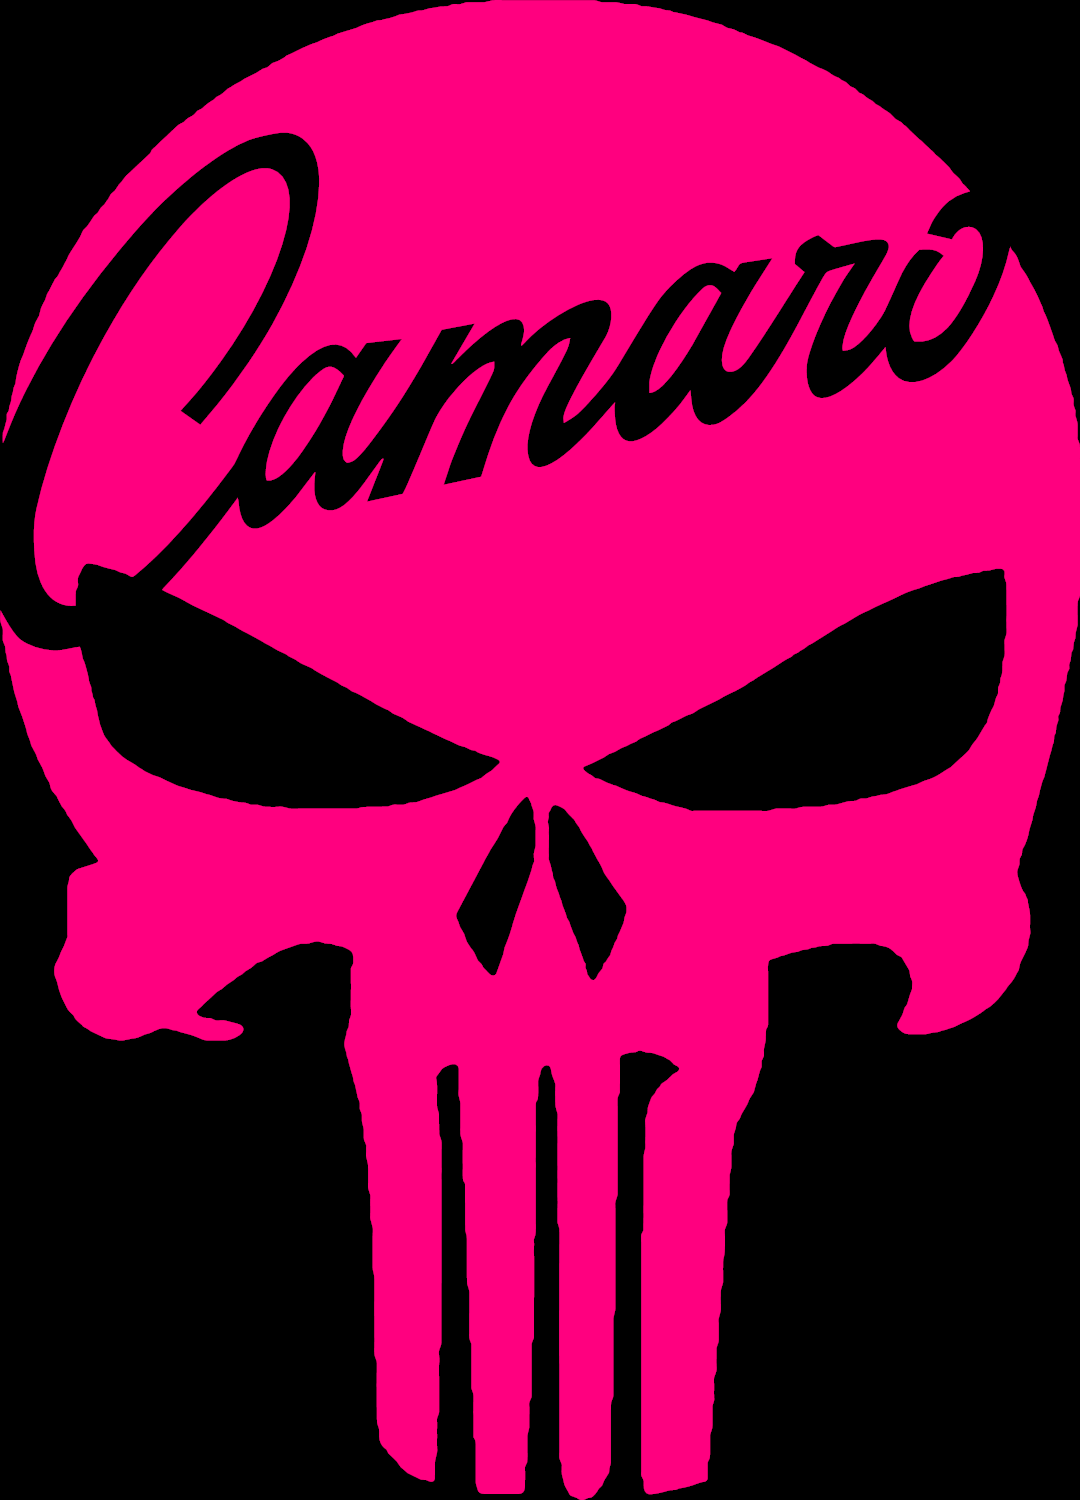 Chevrolet chevy camaro punisher skull vinyl decal 3 sizes 12 colors camaro ss 9 9 of 11